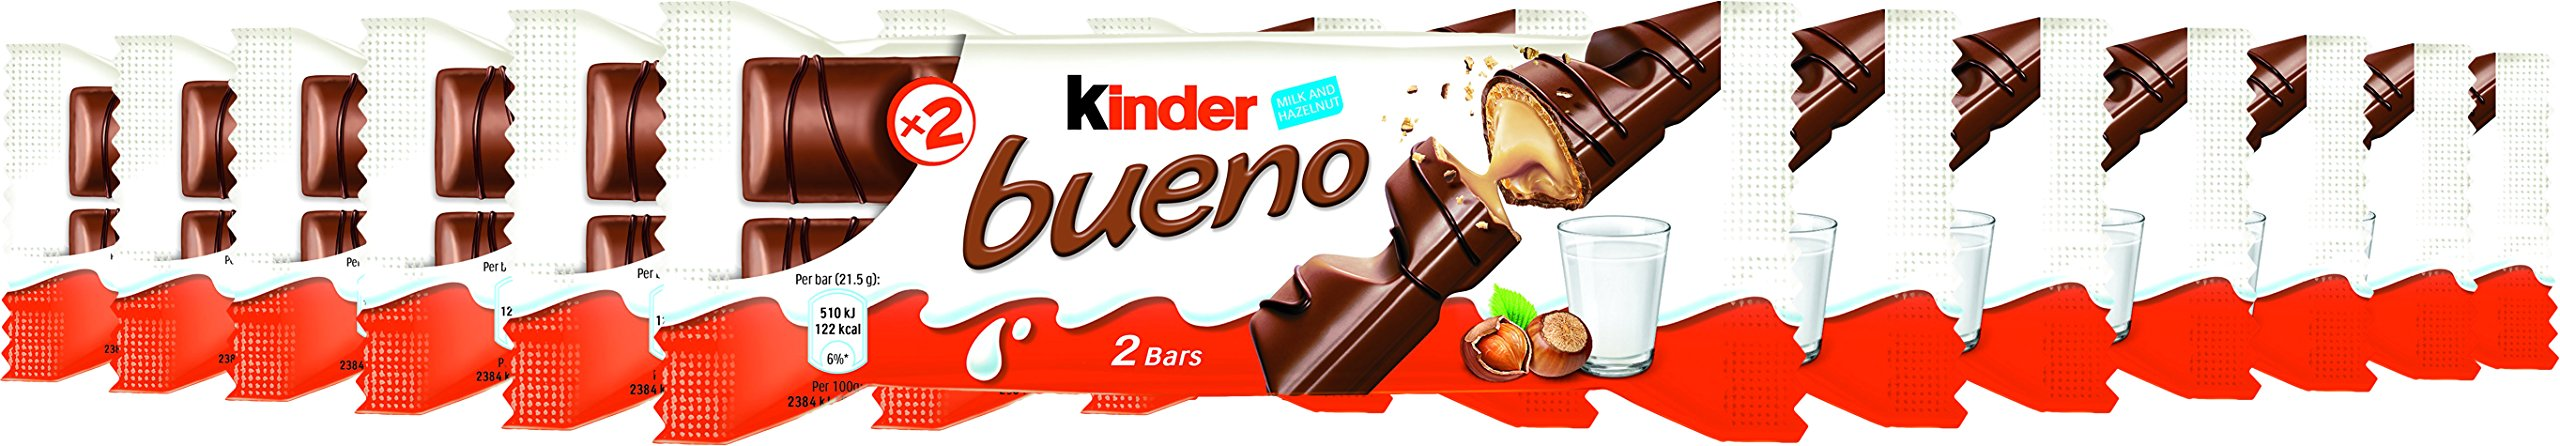 Ferrero Kinder Bueno Wafer Cookies, 1.5 Ounce (43 g) (Pack of 30) by Ferrero (Image #4)